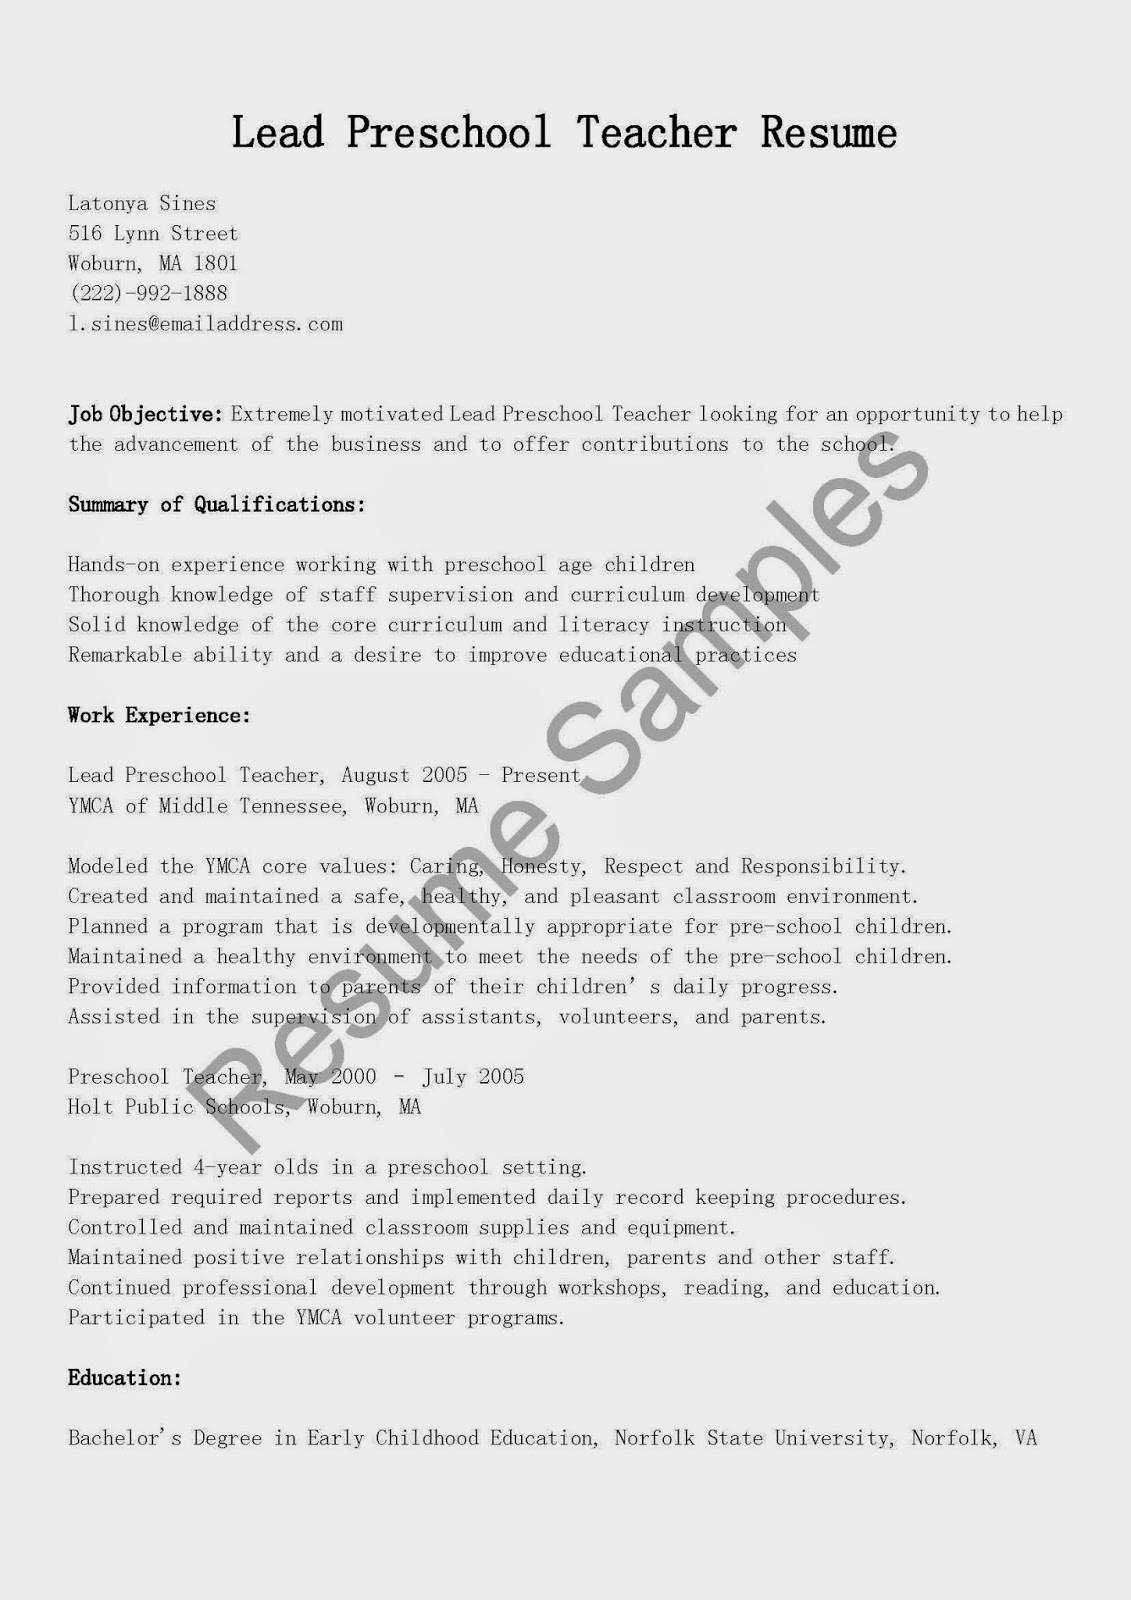 Lead Teacher Job Description Resume Resume Samples Lead Preschool Teacher Resume Sample